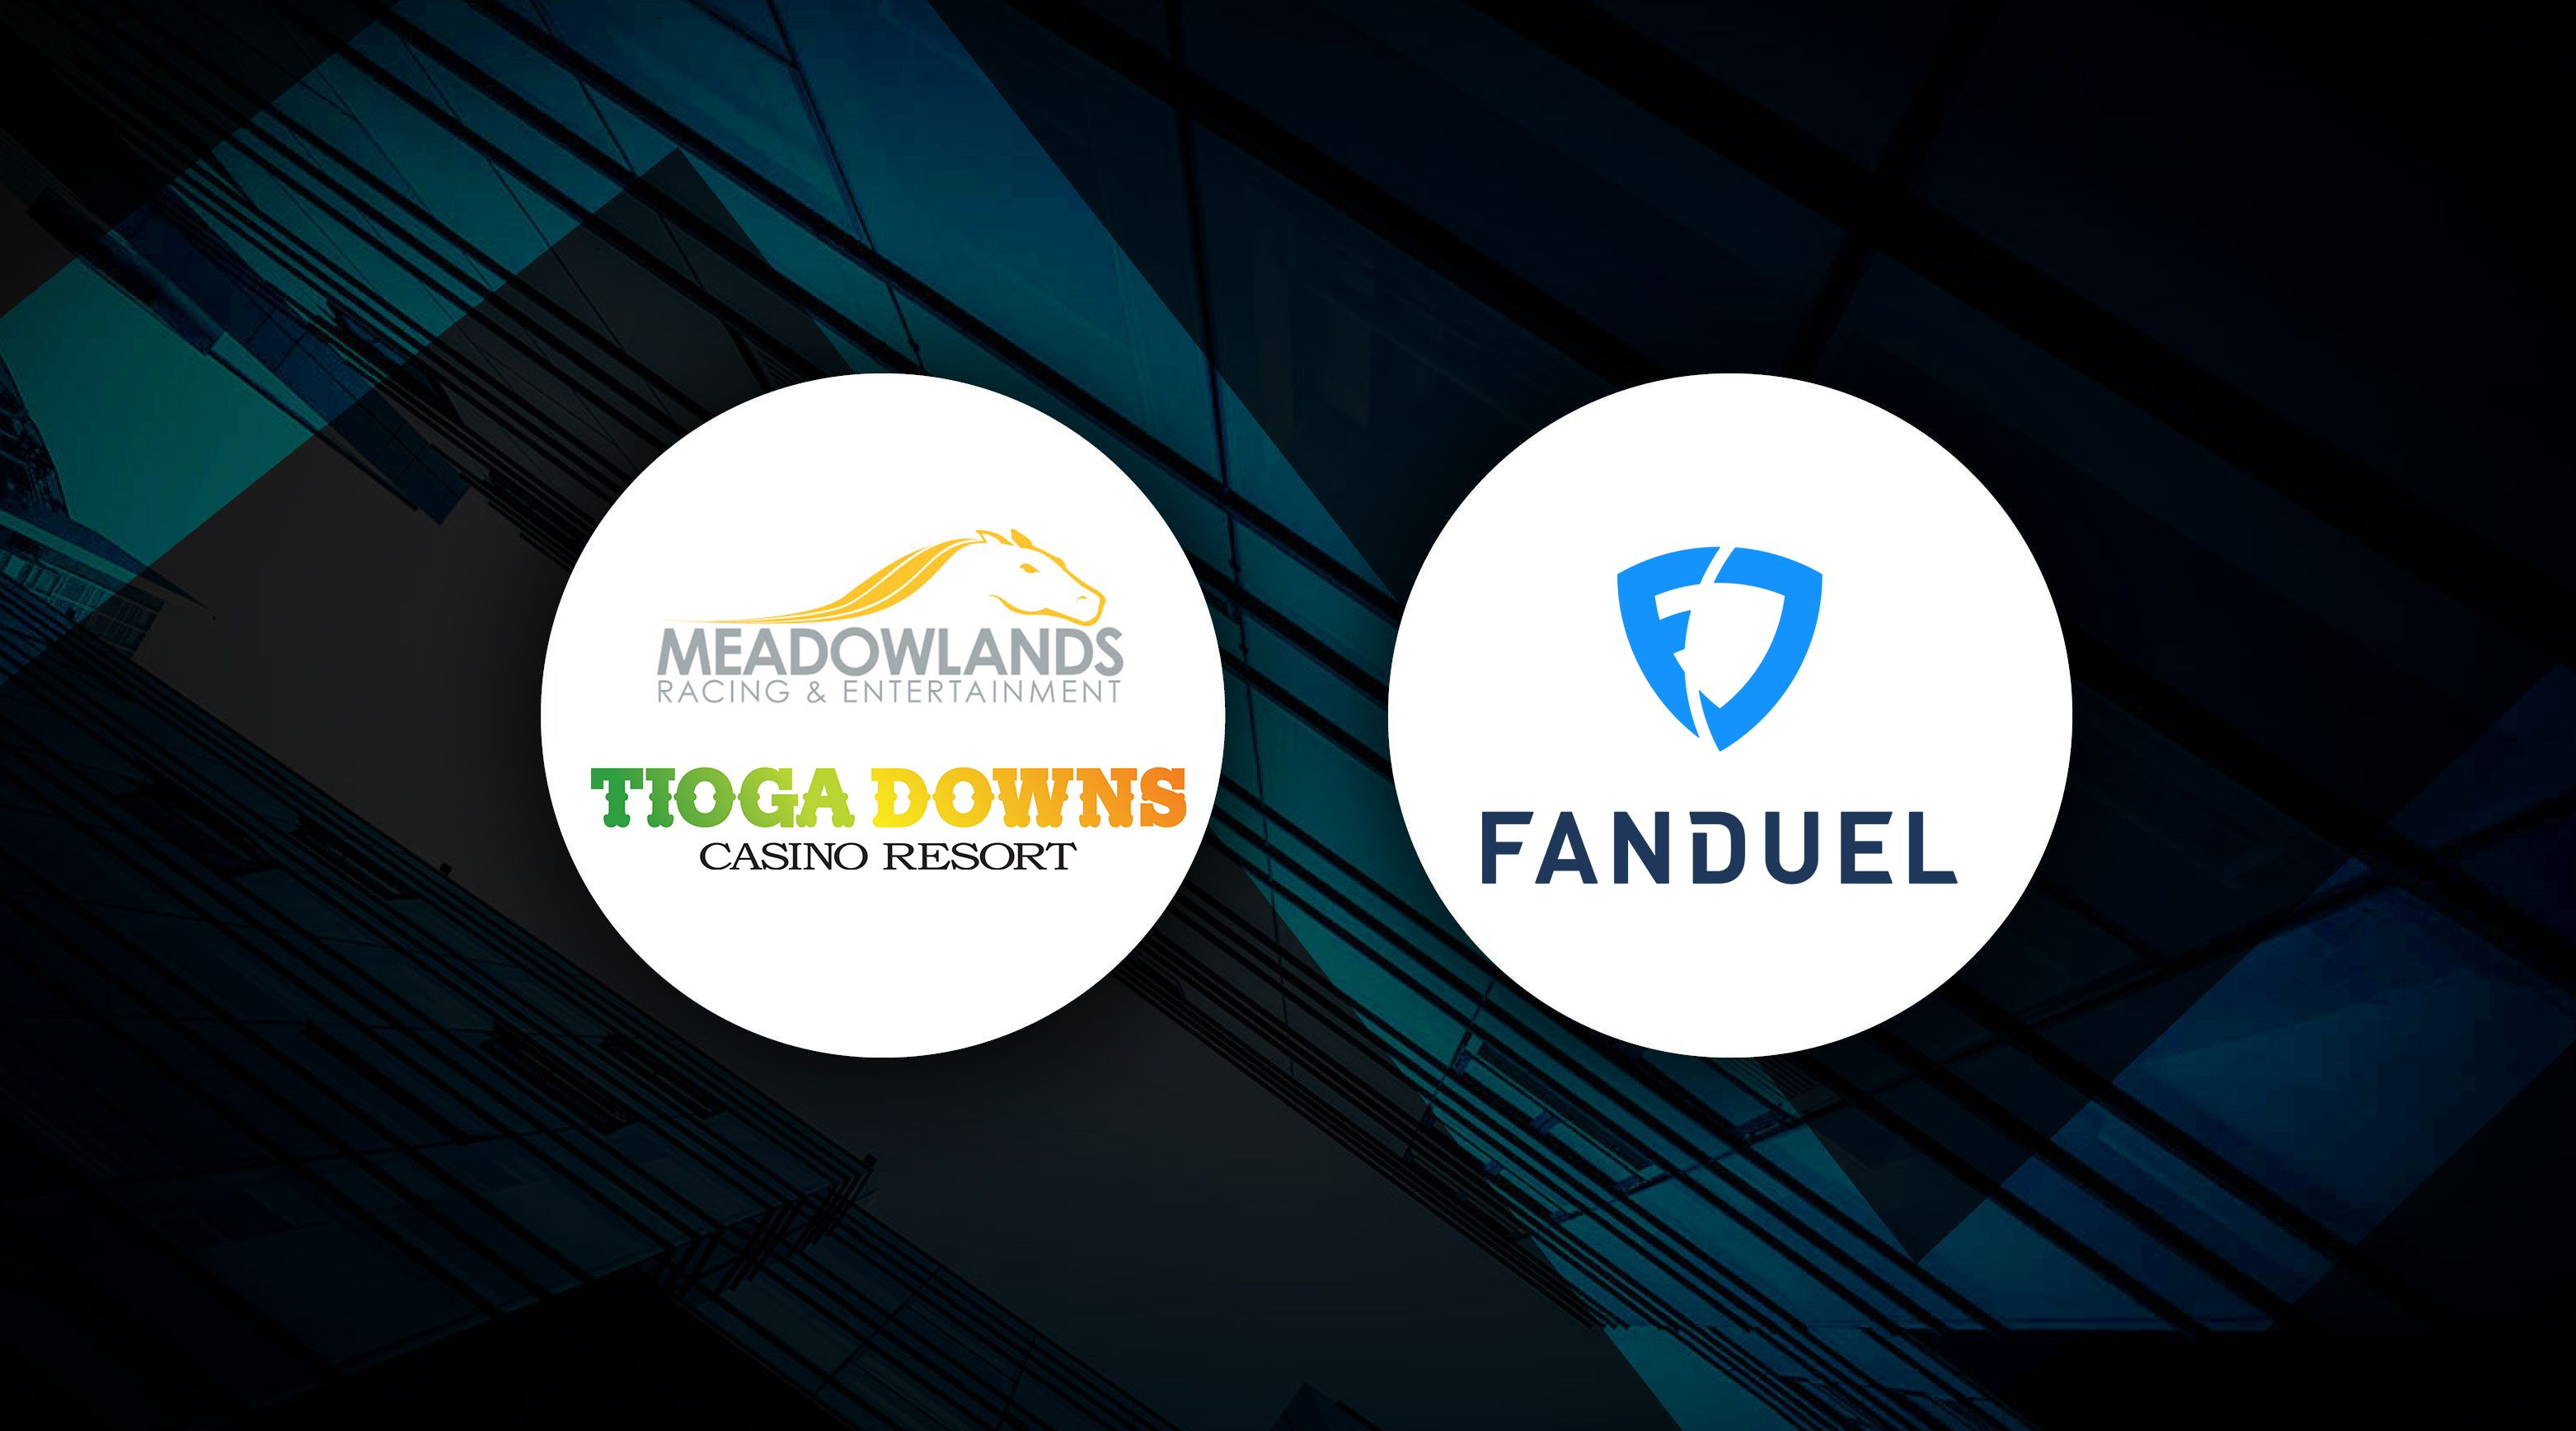 FanDuel Deals With Tioga Downs And Meadowlands Brings Sportsbook To New York And New Jersey